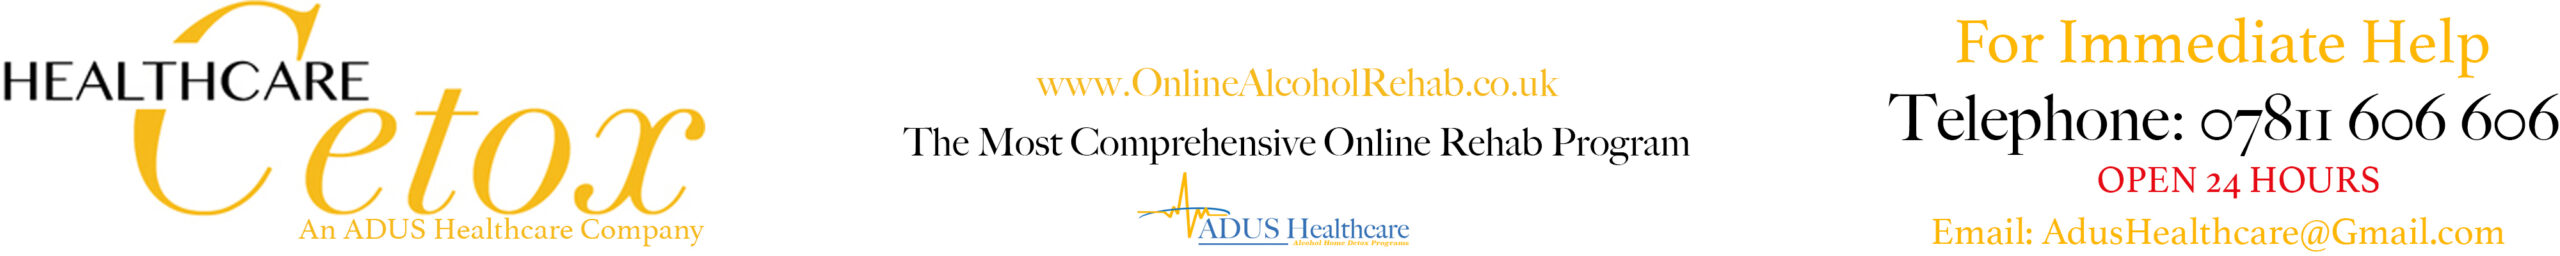 Online alcohol rehab for addiction – Sinclair Method